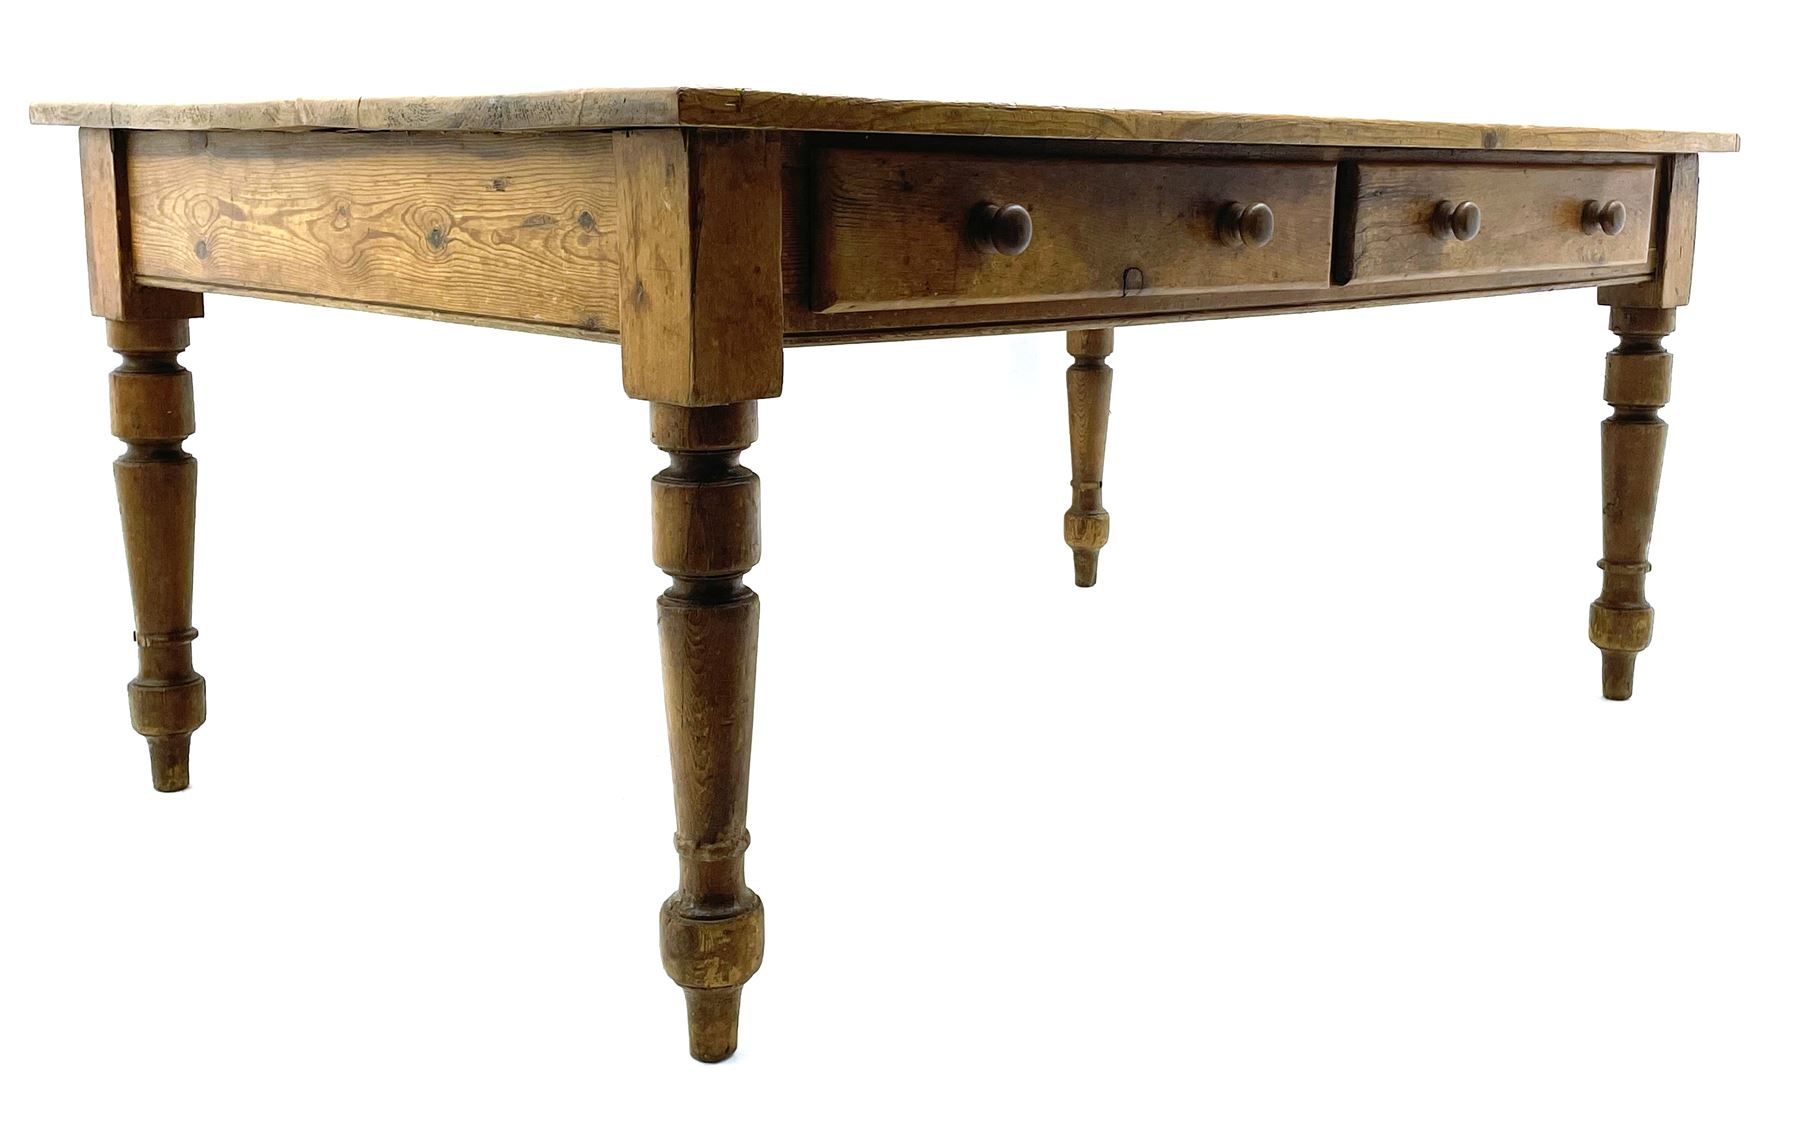 19th century and later pine farmhouse style kitchen dining table